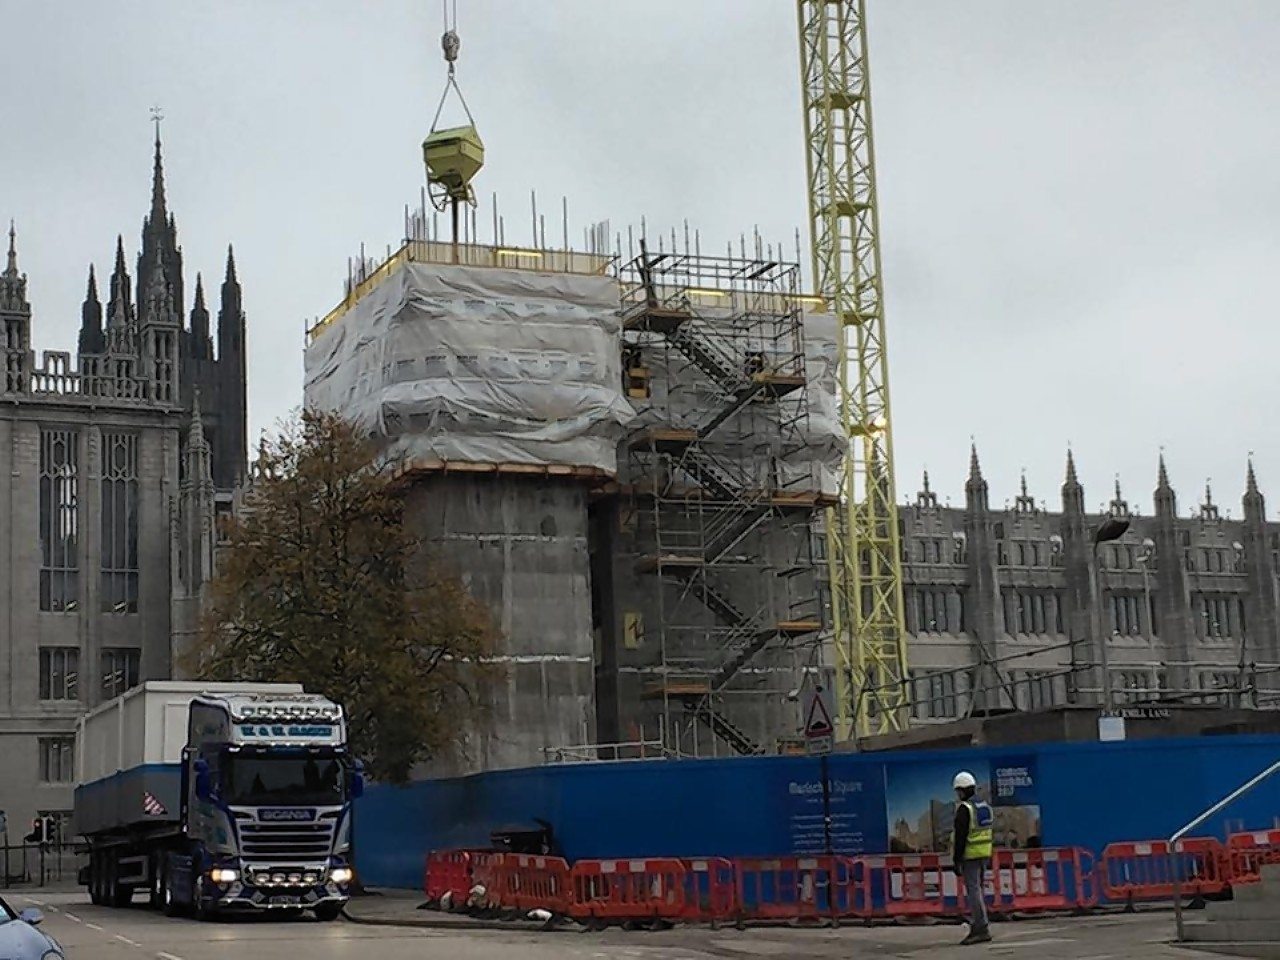 The Marischal Square development has brought transport difficulties